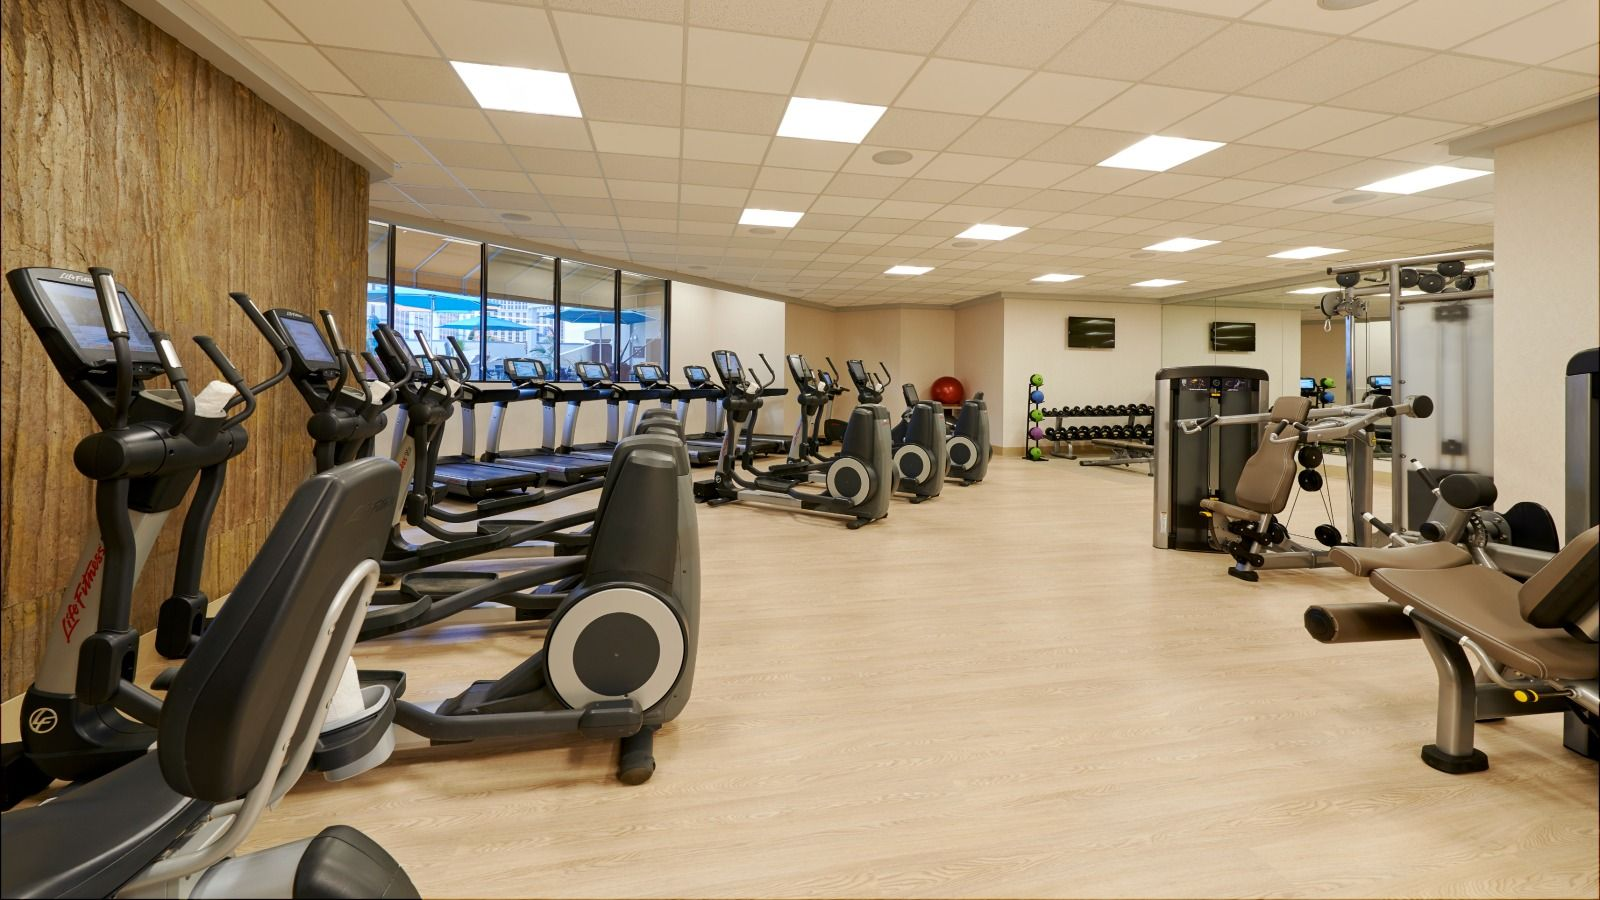 Las Vegas Spa - Westin Workout Fitness Studio